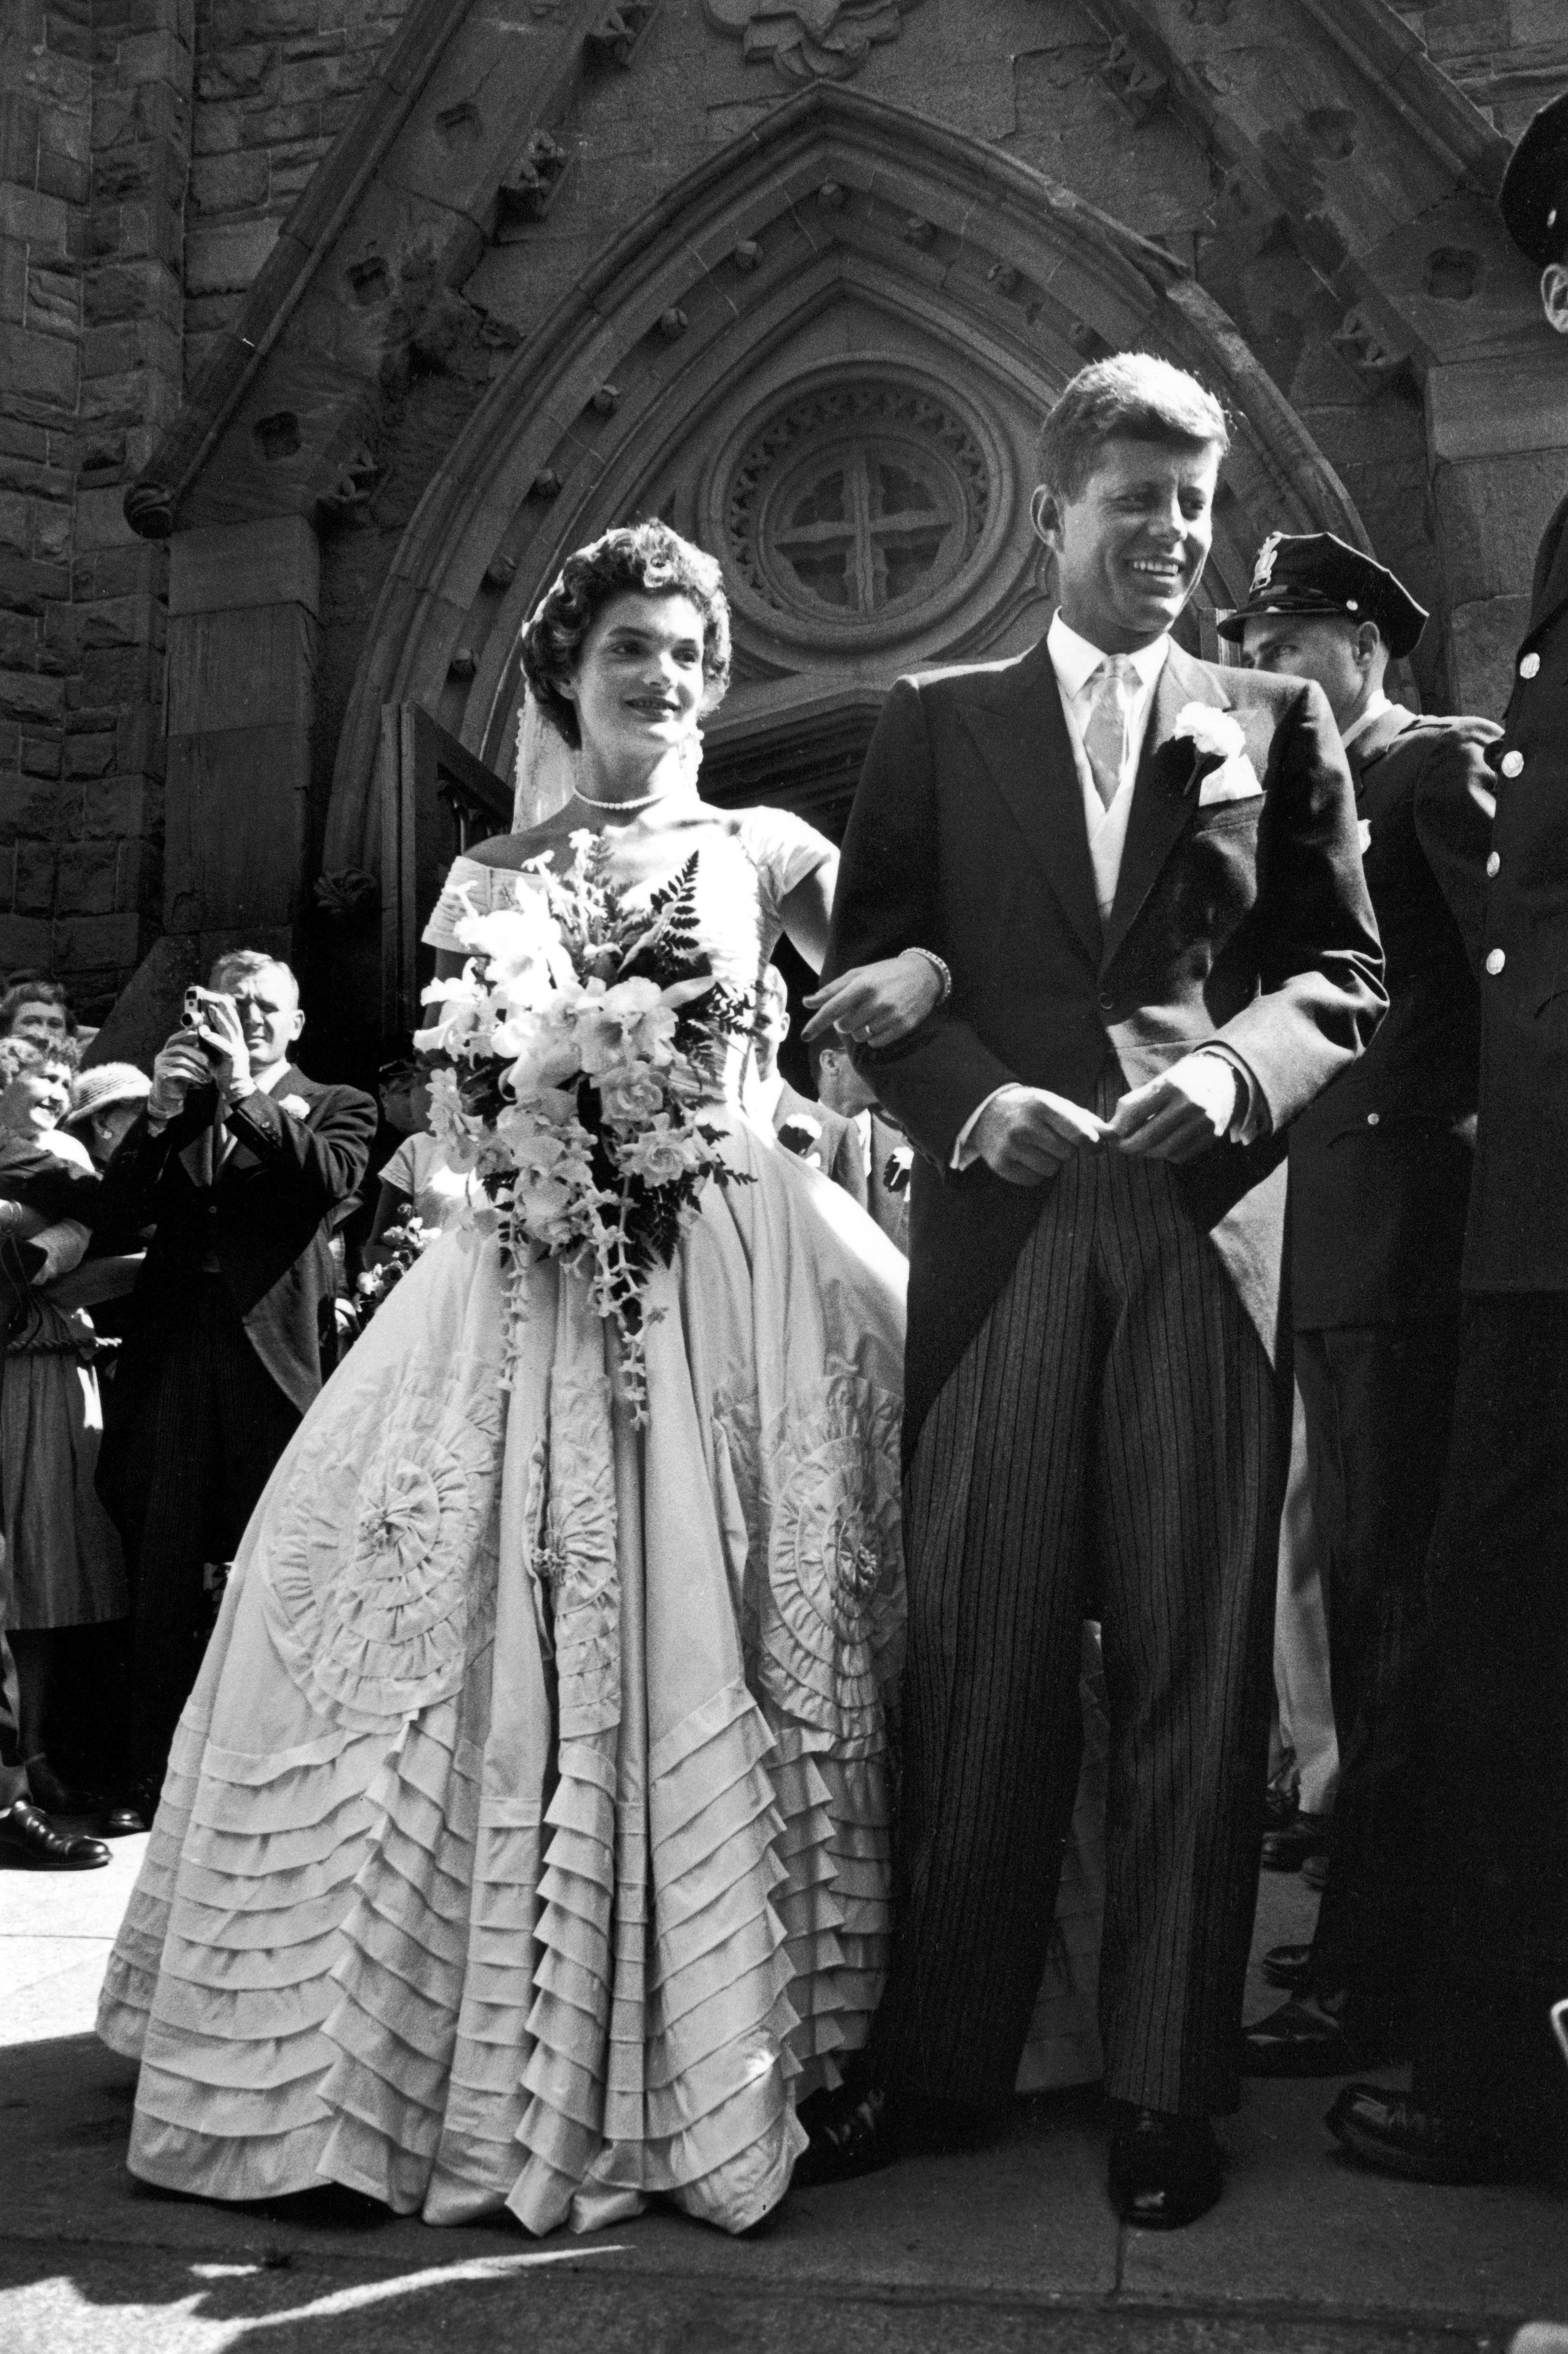 Jacqueline Bouvier's Wedding Dress Jacqueline Bouvier married John F. Kennedy on September 12, 1953 in Newport, Rhode Island. Her gorgeous wedding gown was created by African-American fashion designer Ann Lowe —who didn't receive credit for the dress until much later in life—and is now on display at the Kennedy Library in Boston.